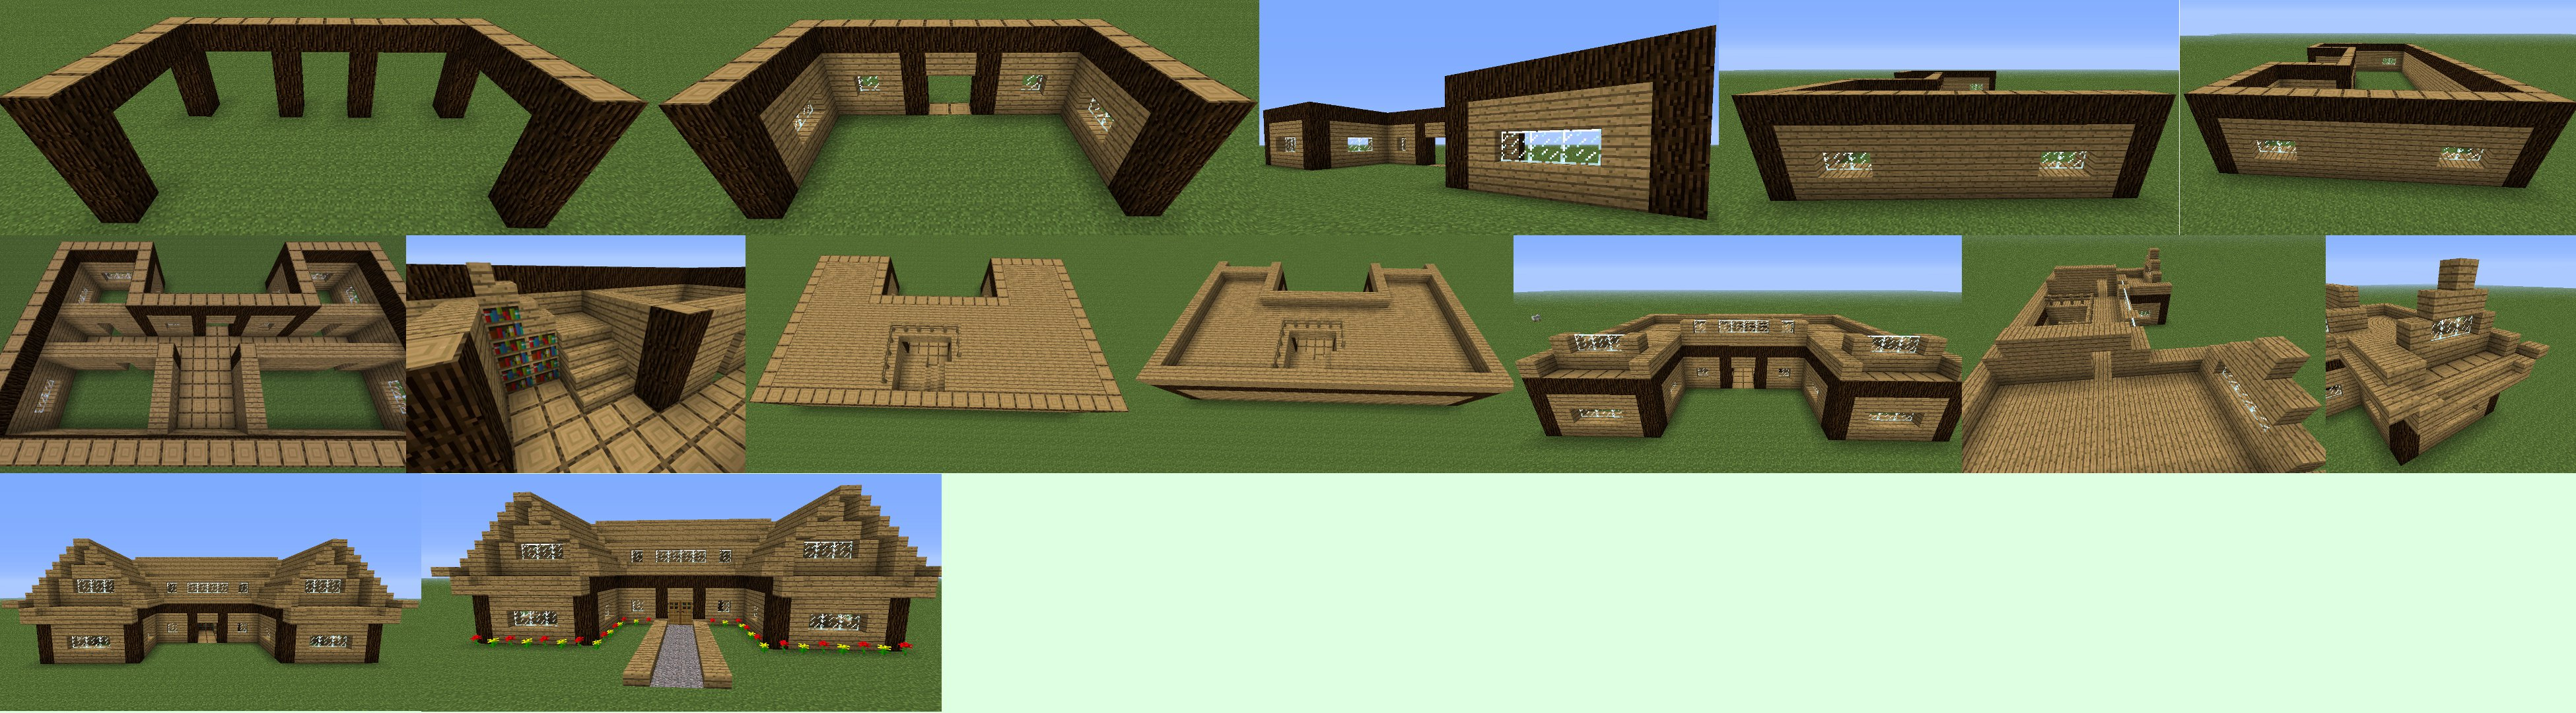 How to build a farm house in minecraft minecraft guides for How to build a house step by step instructions